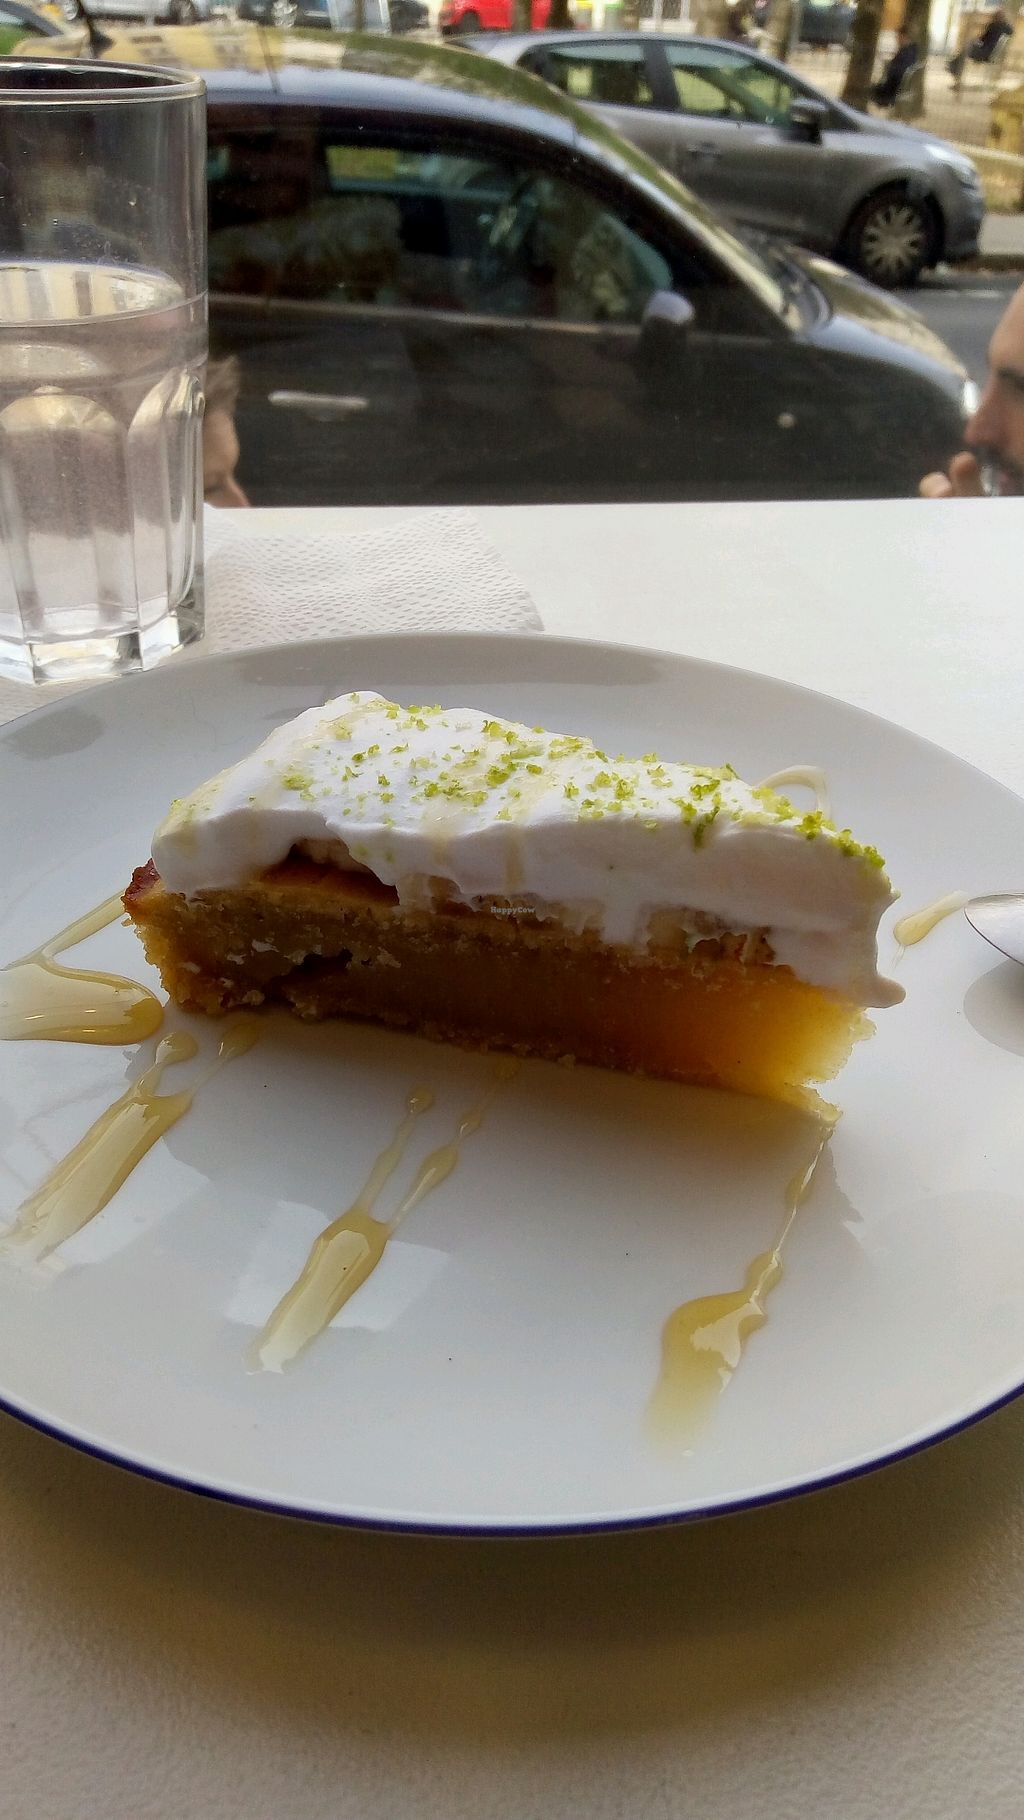 """Photo of Against the Grain  by <a href=""""/members/profile/CamilleFa"""">CamilleFa</a> <br/>Dessert banane citron vert  <br/> April 7, 2018  - <a href='/contact/abuse/image/66470/381878'>Report</a>"""